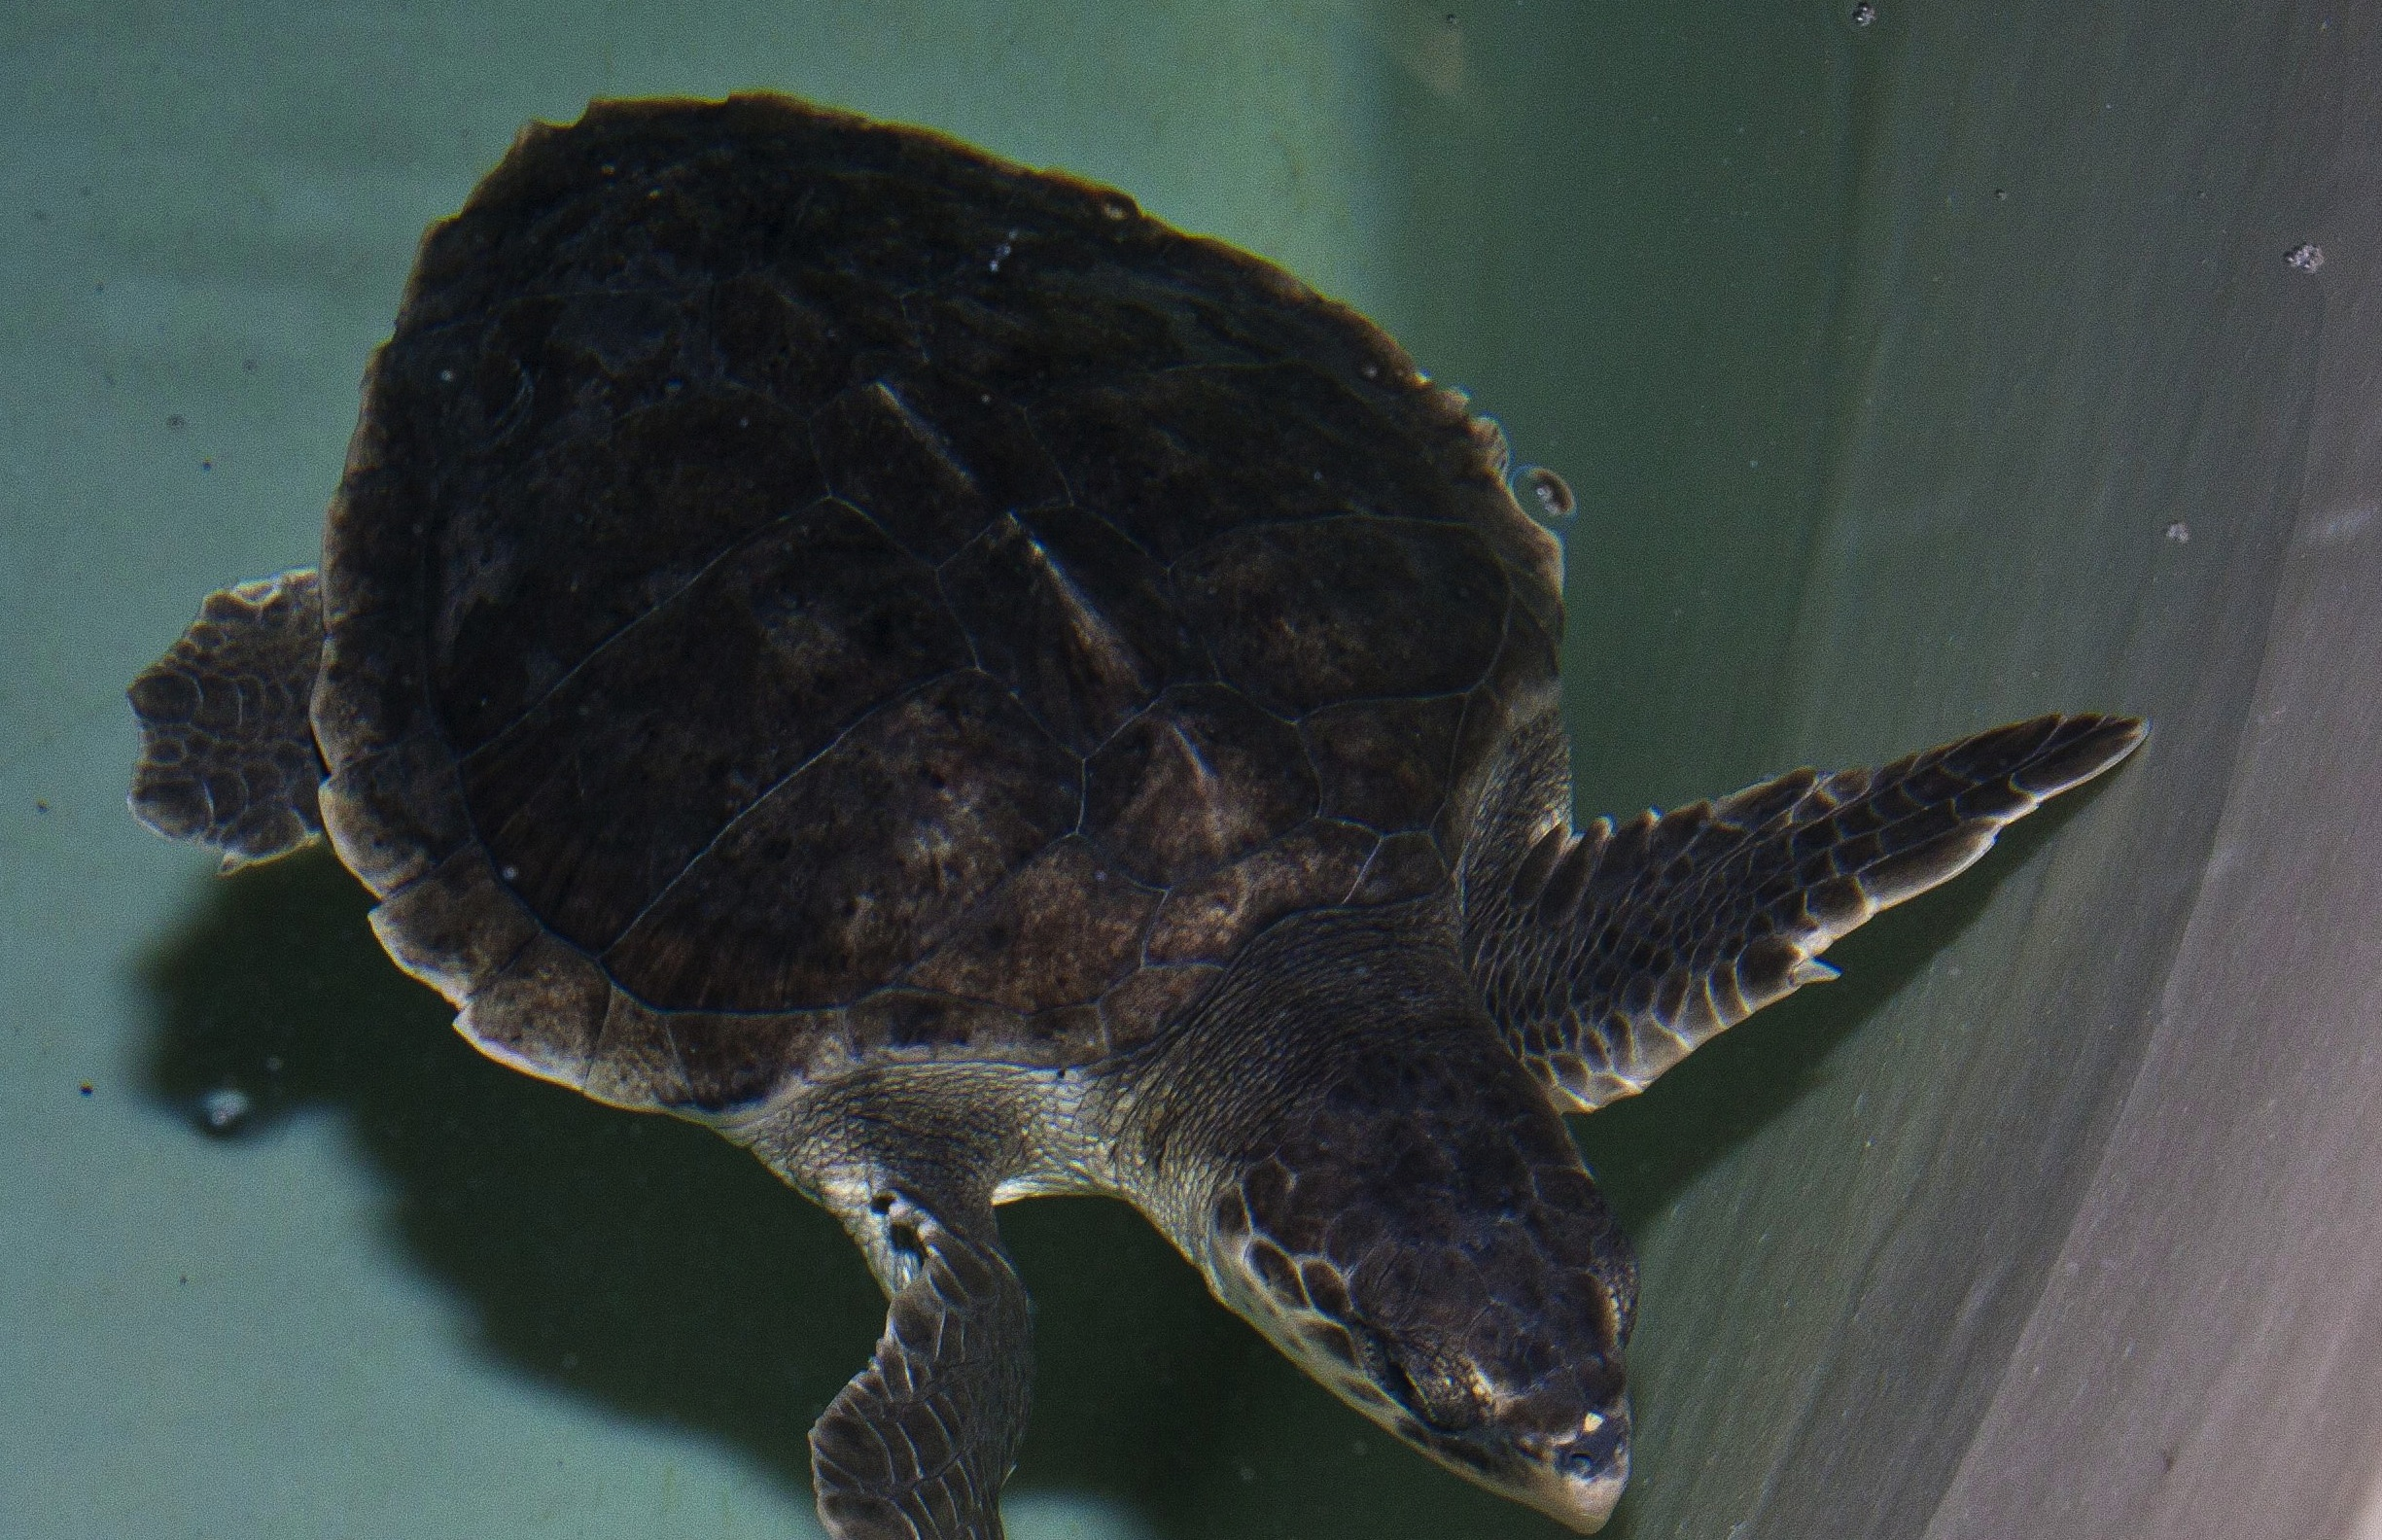 A sea turtle rescued by Long Island Aquarium found on Fire Island in Oct. 2013 credit: Joe Dhlopolsky